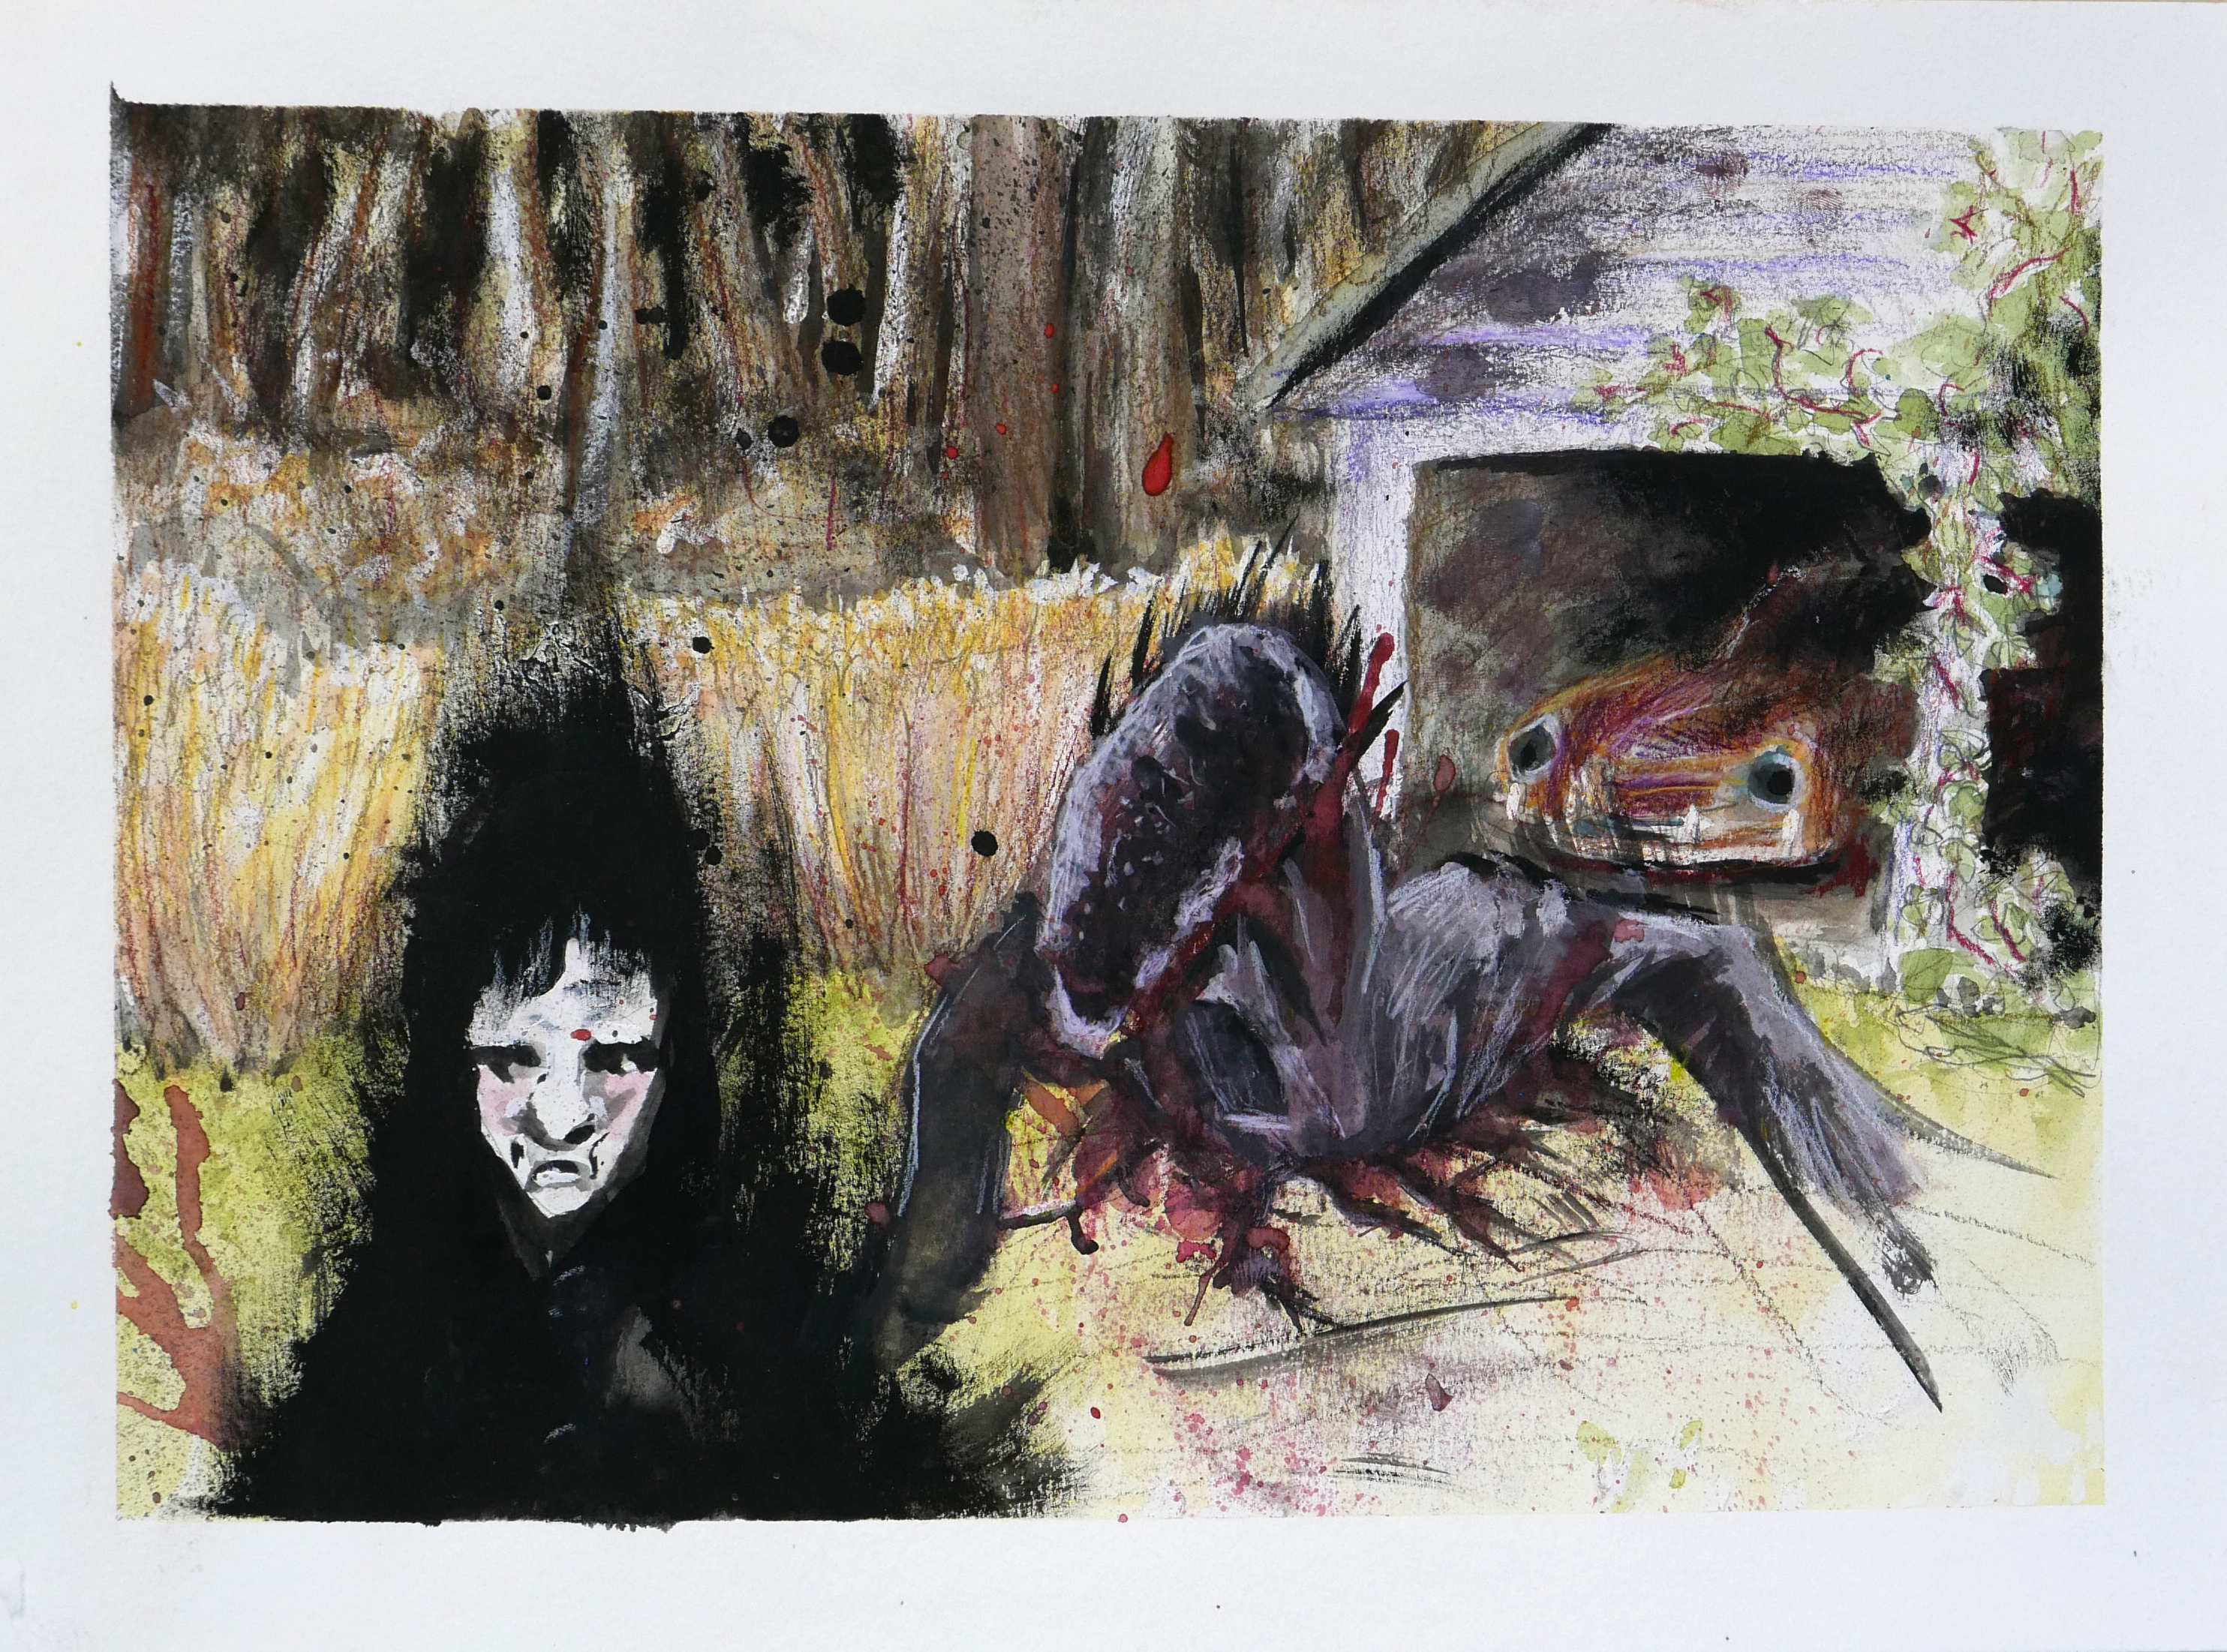 At a garage on the edge of the forest, a hooded figure is standing.  Something without a face appears from the ground behind them.